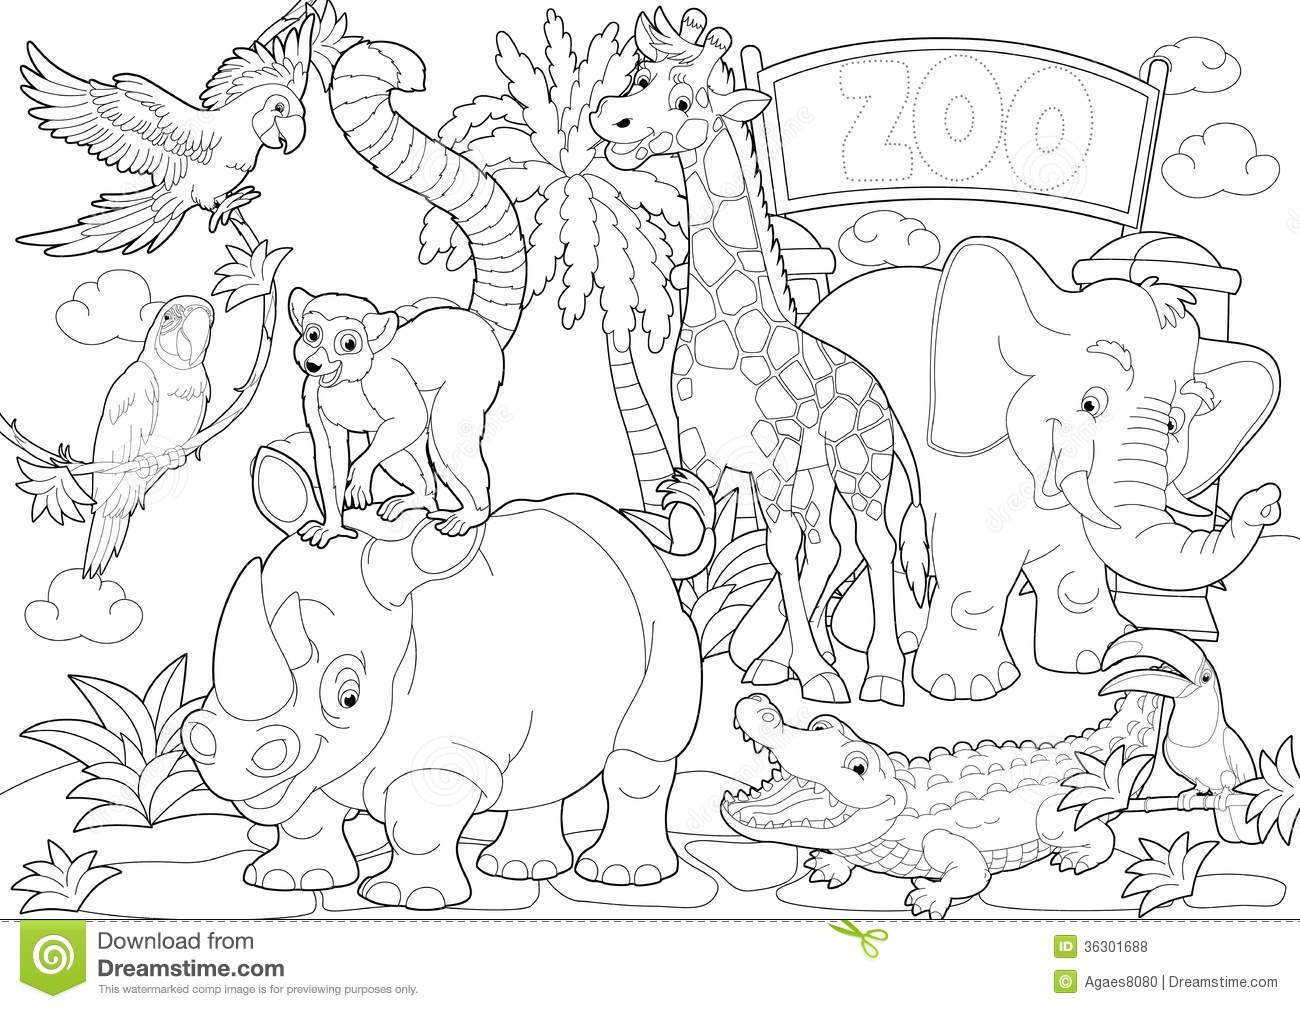 Coloring page the zoo illustration for the children royalty | Clip ...